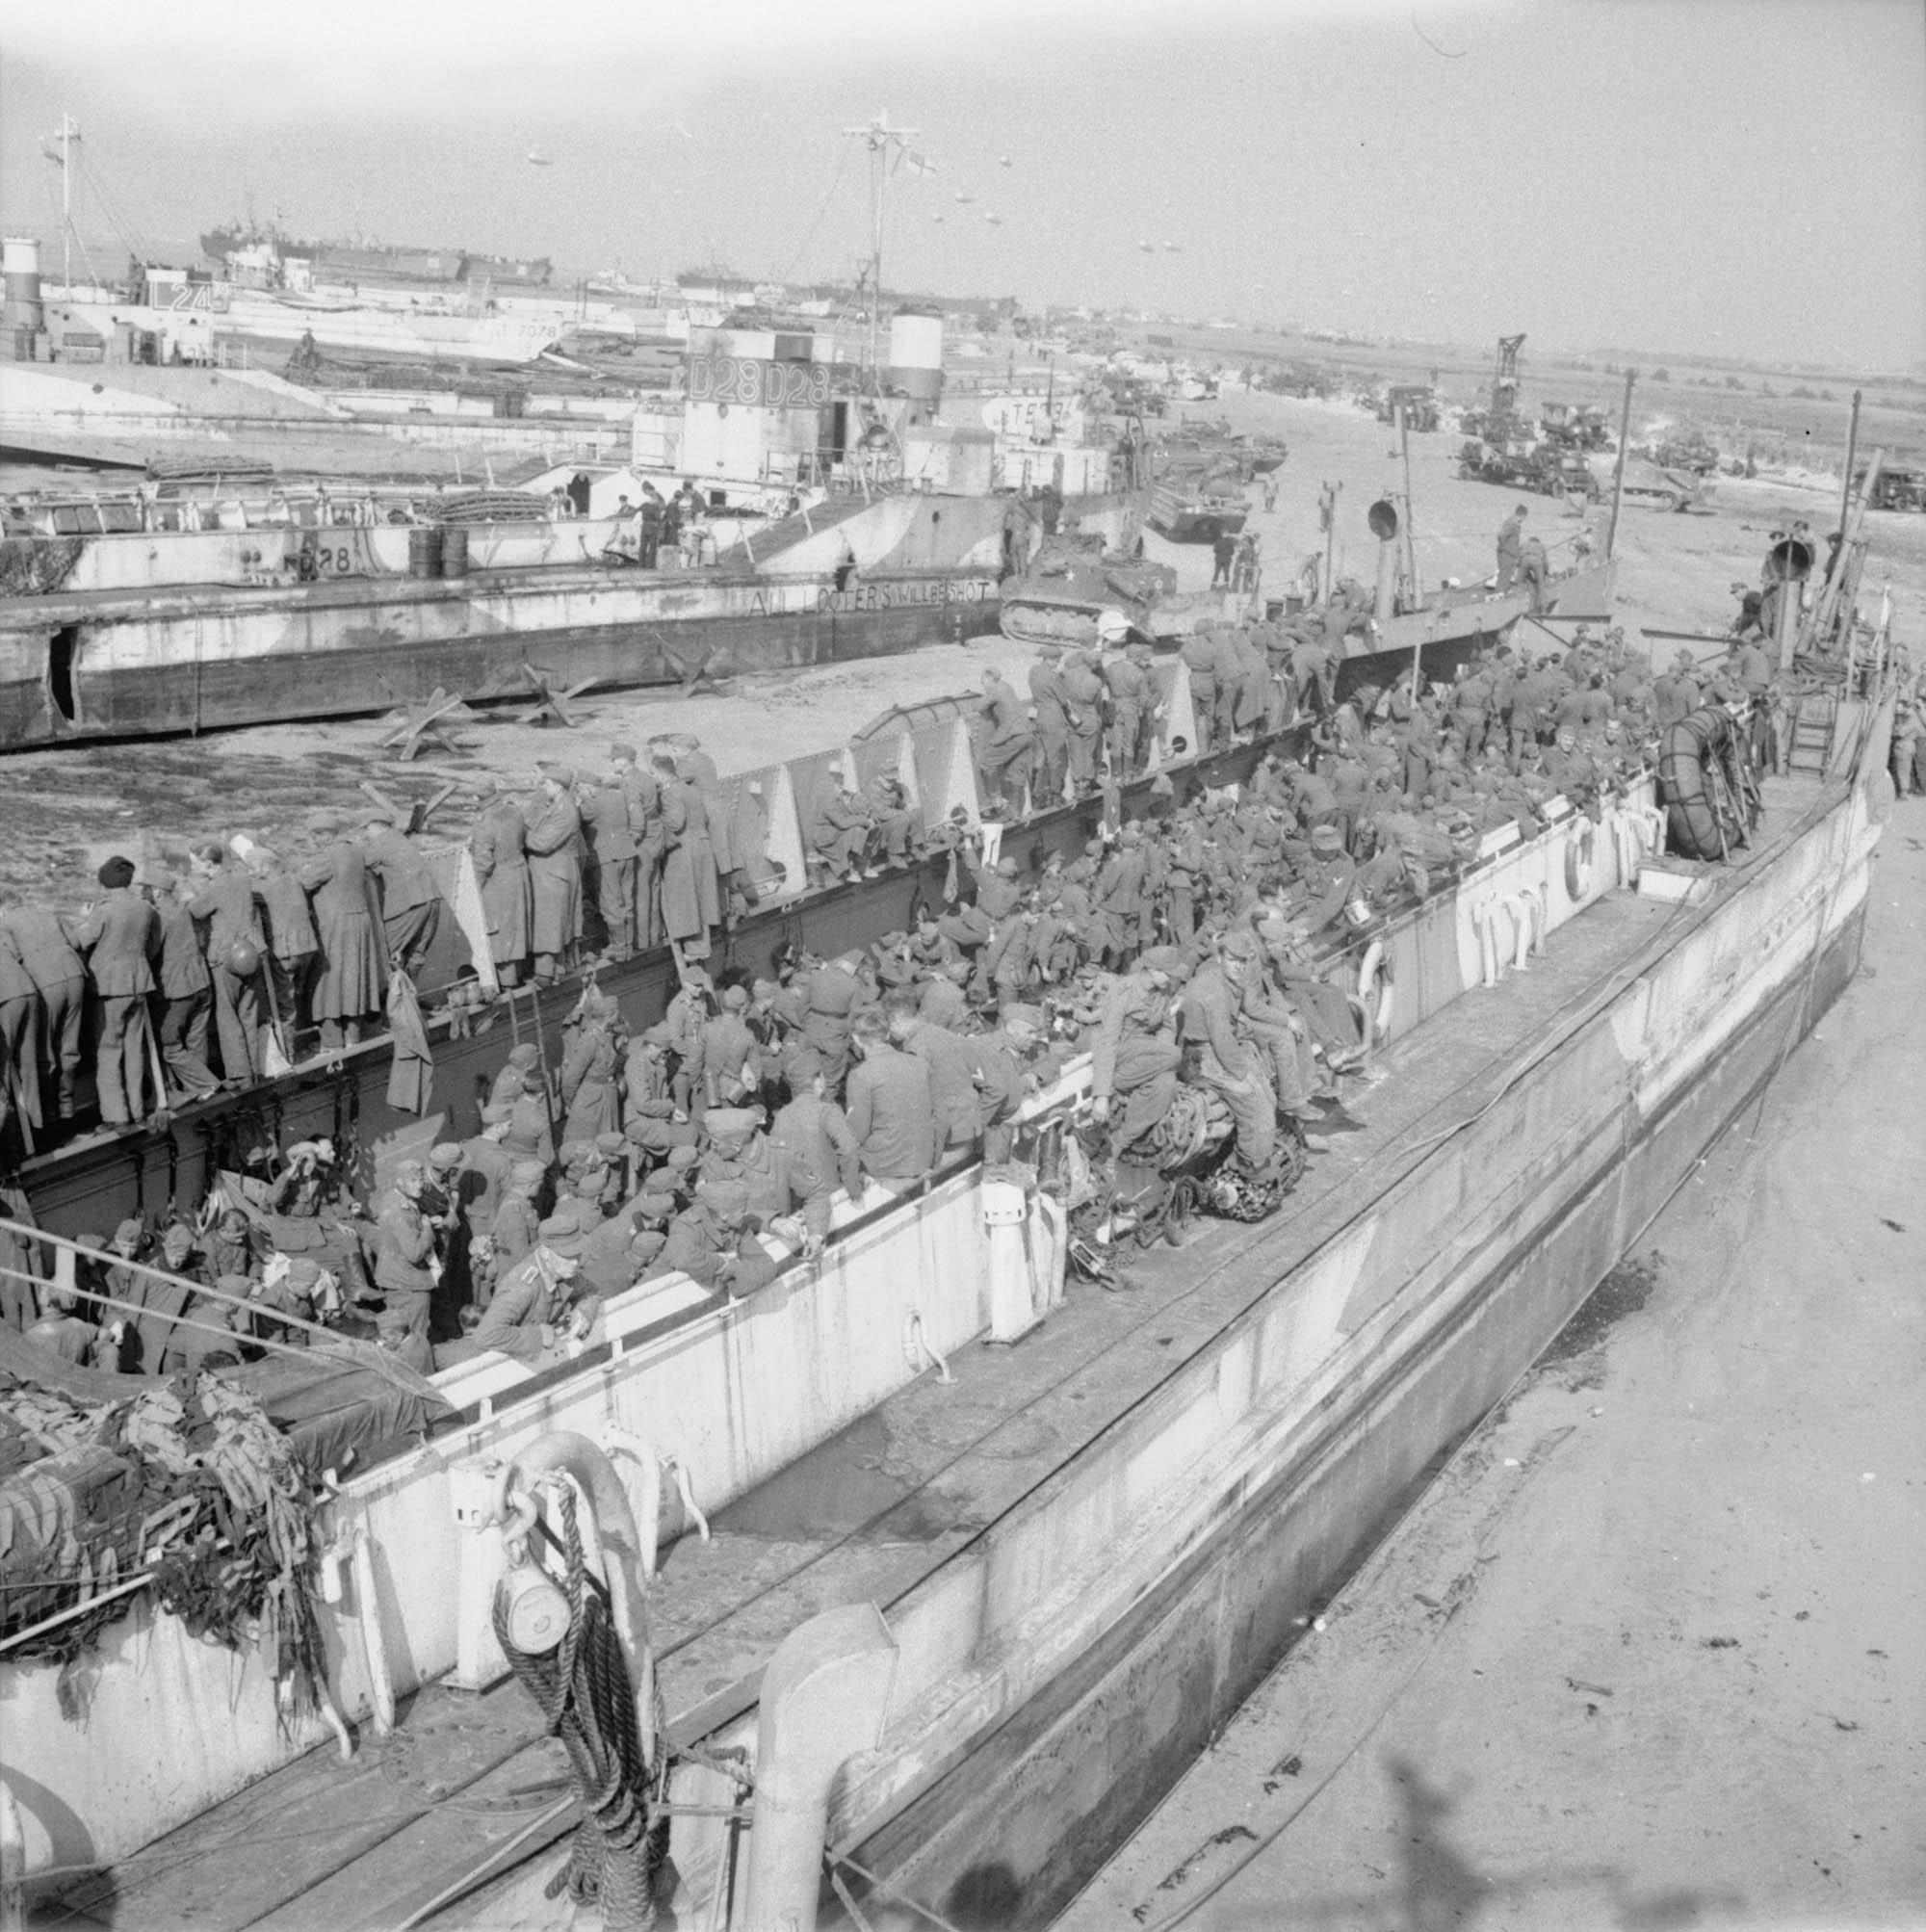 a black and white photo of lots of soldeirs standing on a large barge-like boat on a beach